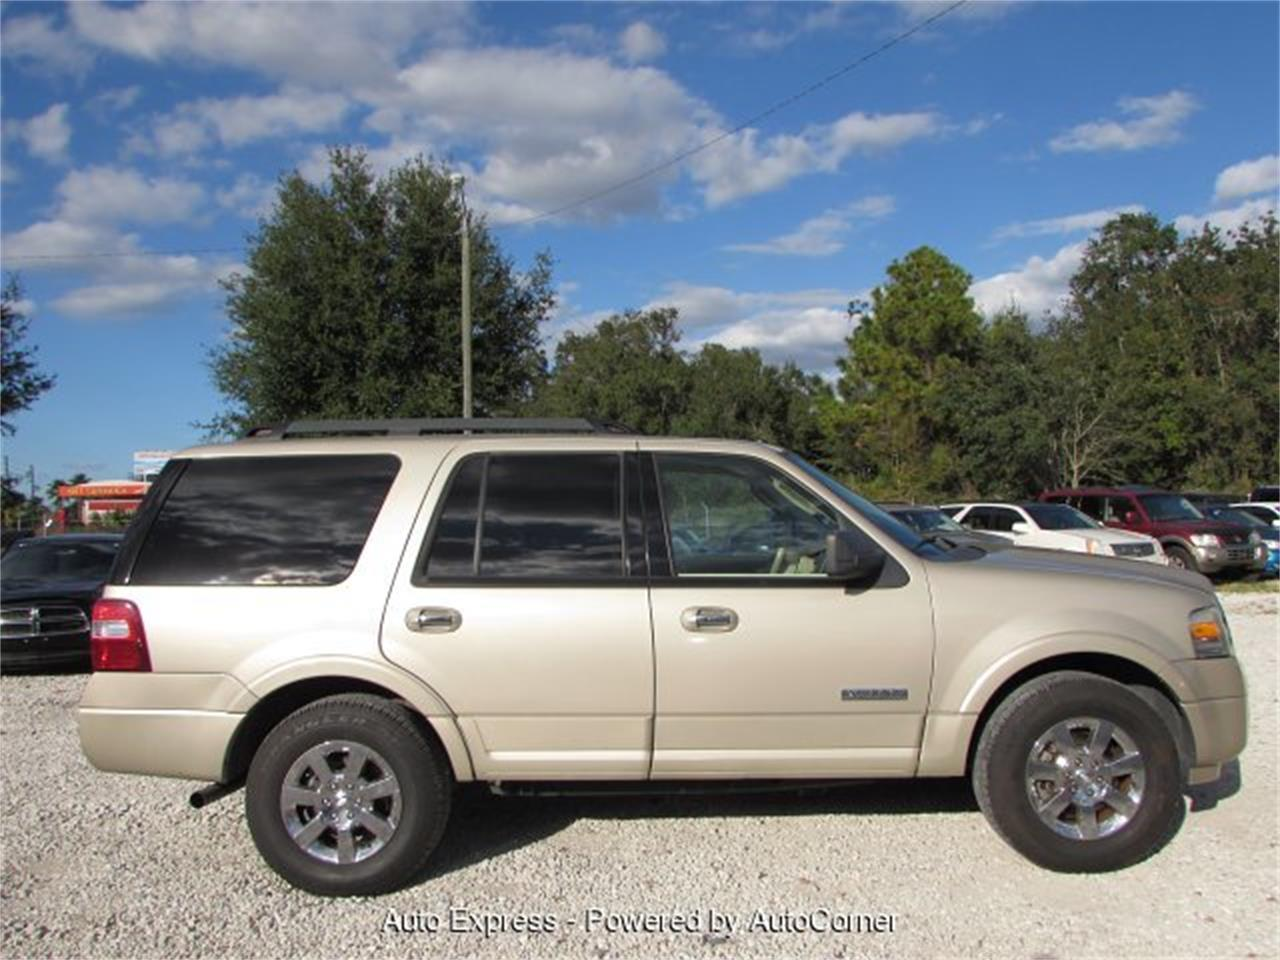 2008 Ford Expedition for sale in Orlando, FL – photo 8